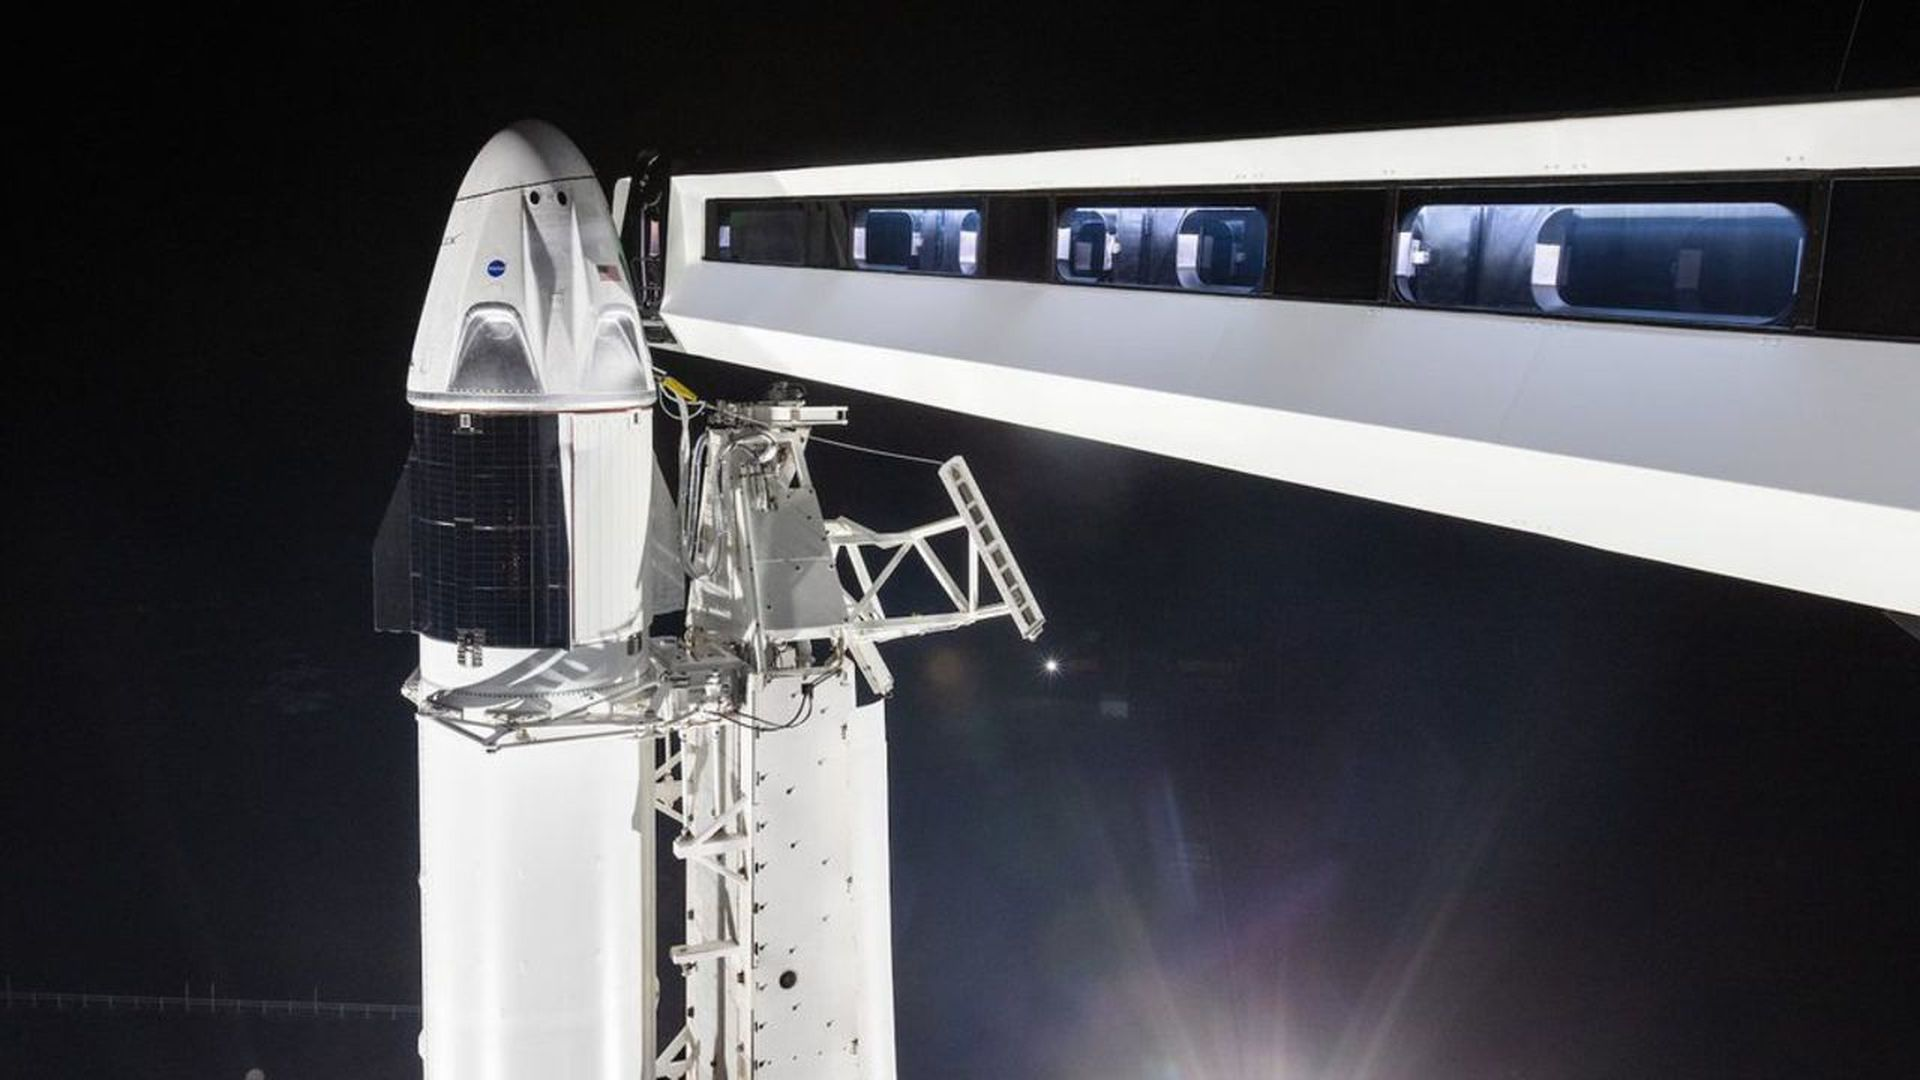 The Crew Dragon vehicle ahead of its first uncrewed launch to the ISS. Photo: SpaceX